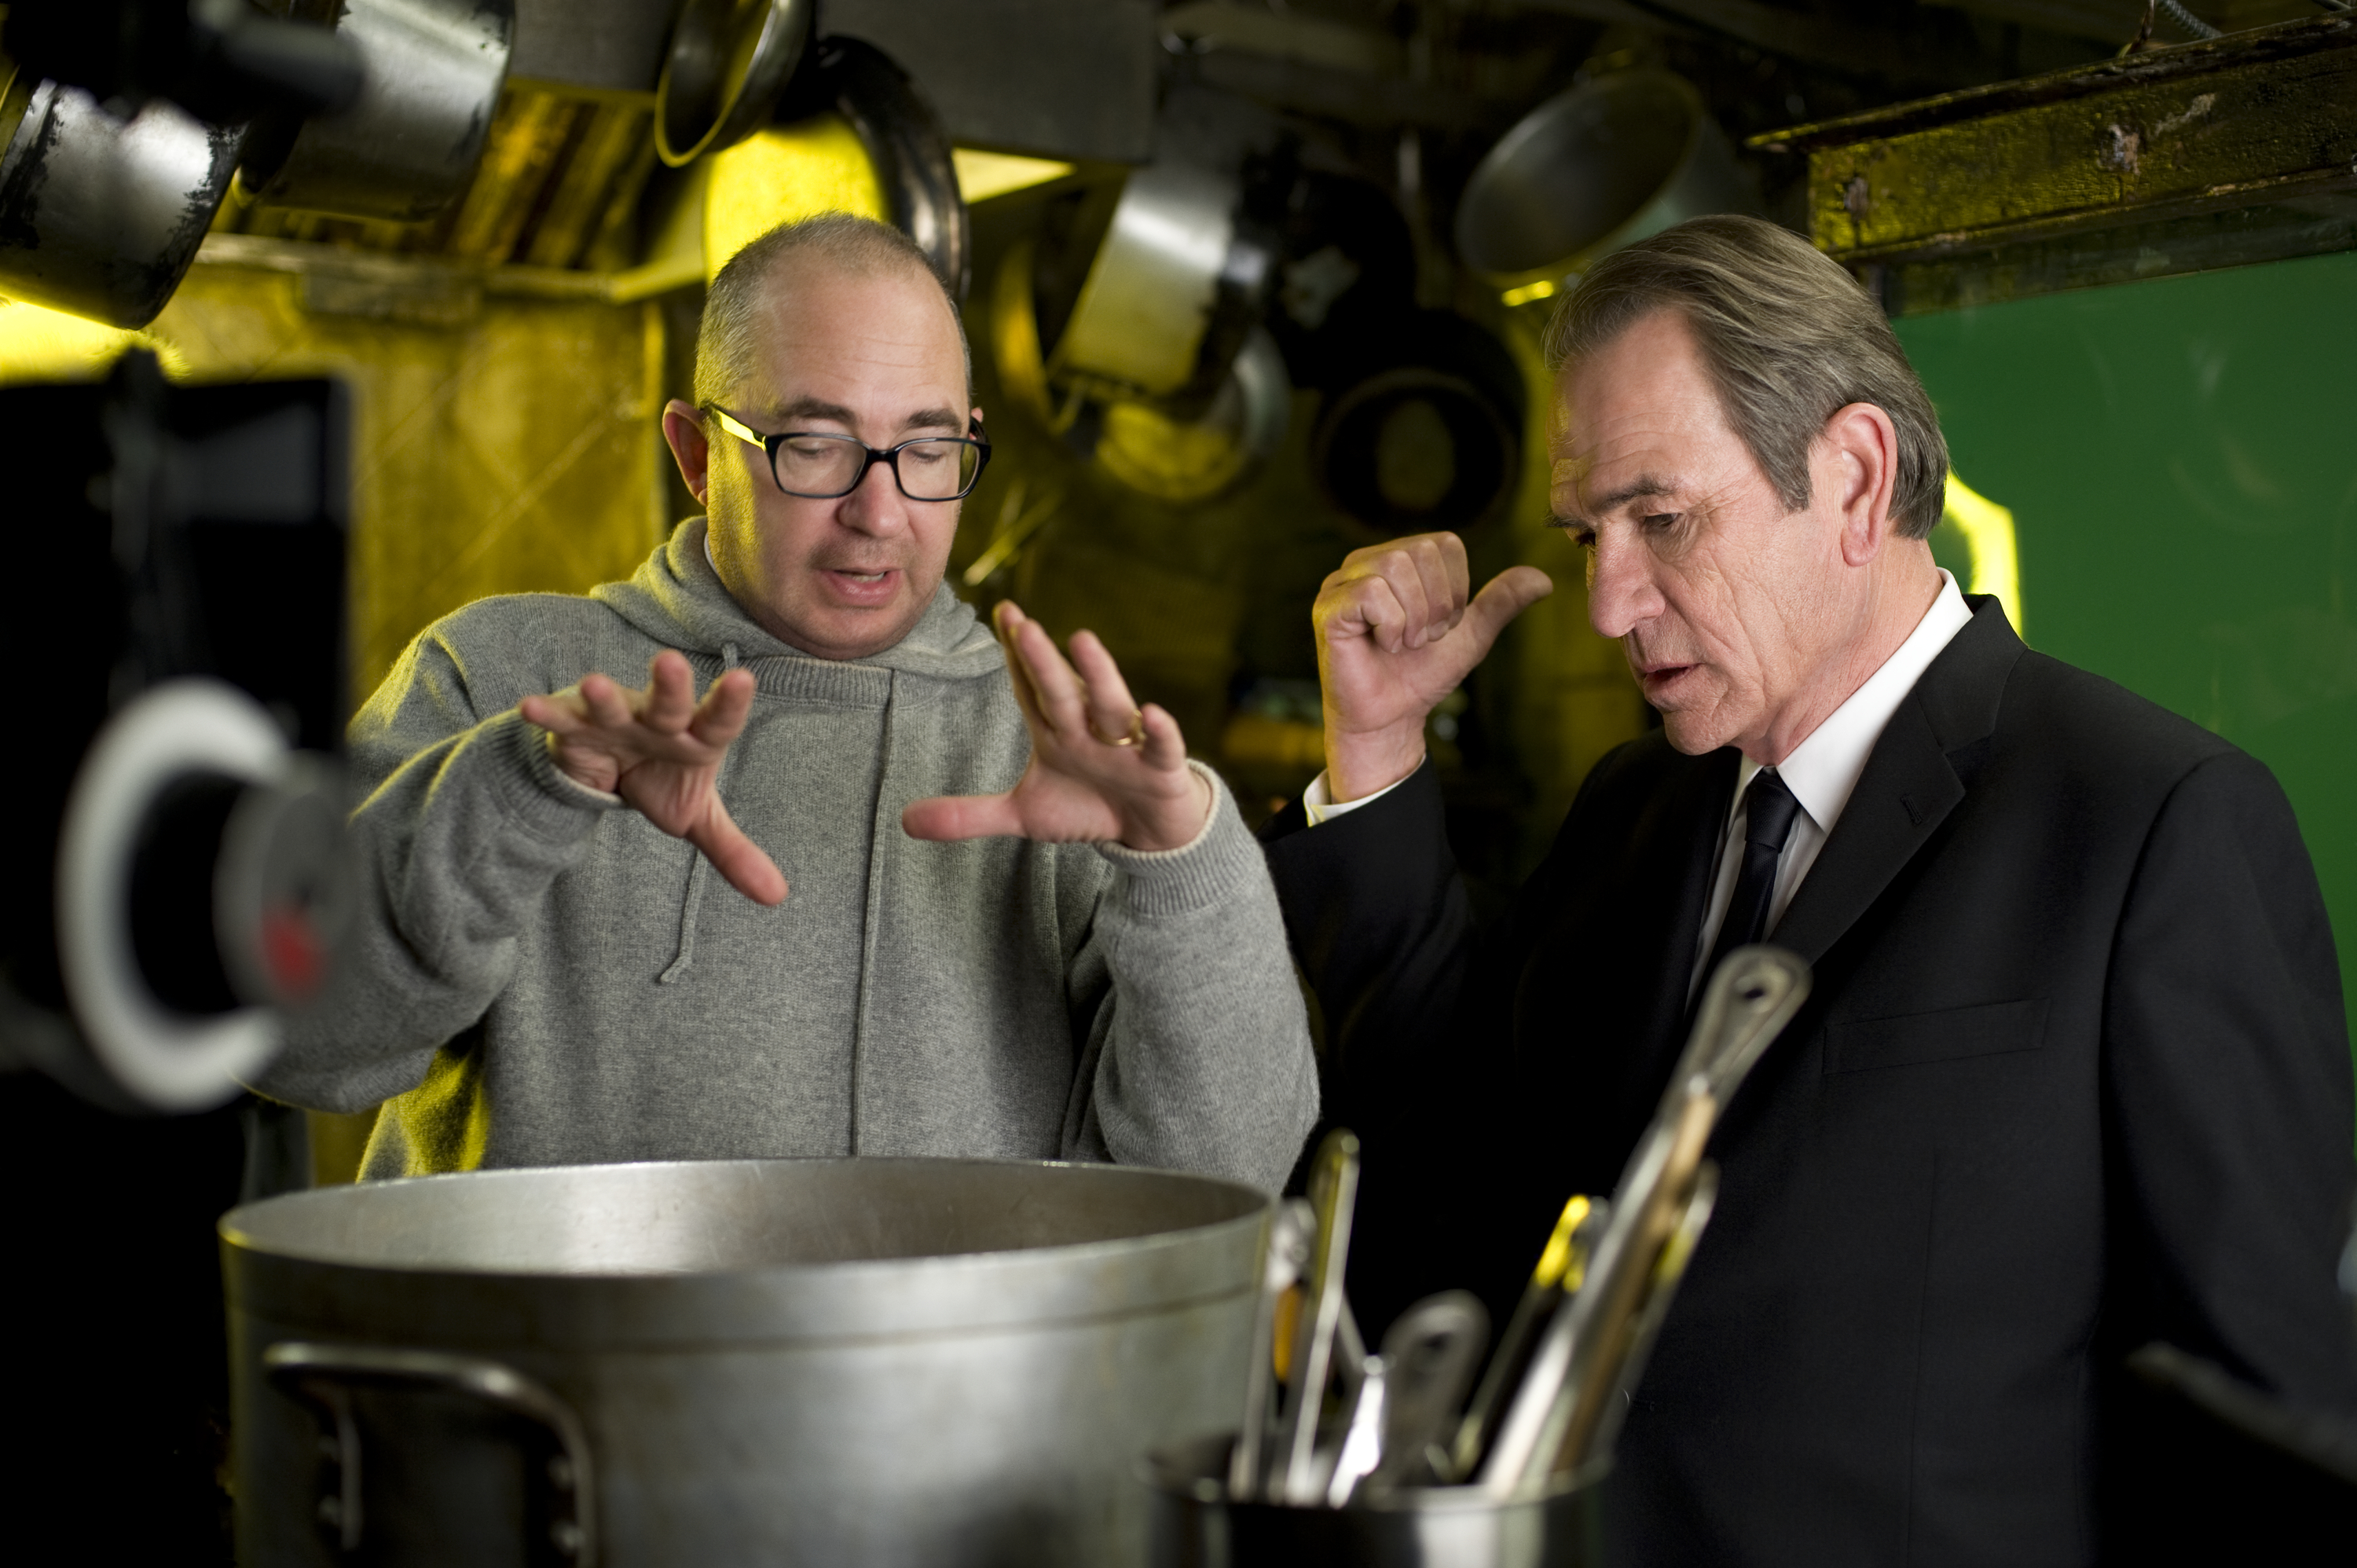 Director Barry Sonnenfeld and Tommy Lee Jones